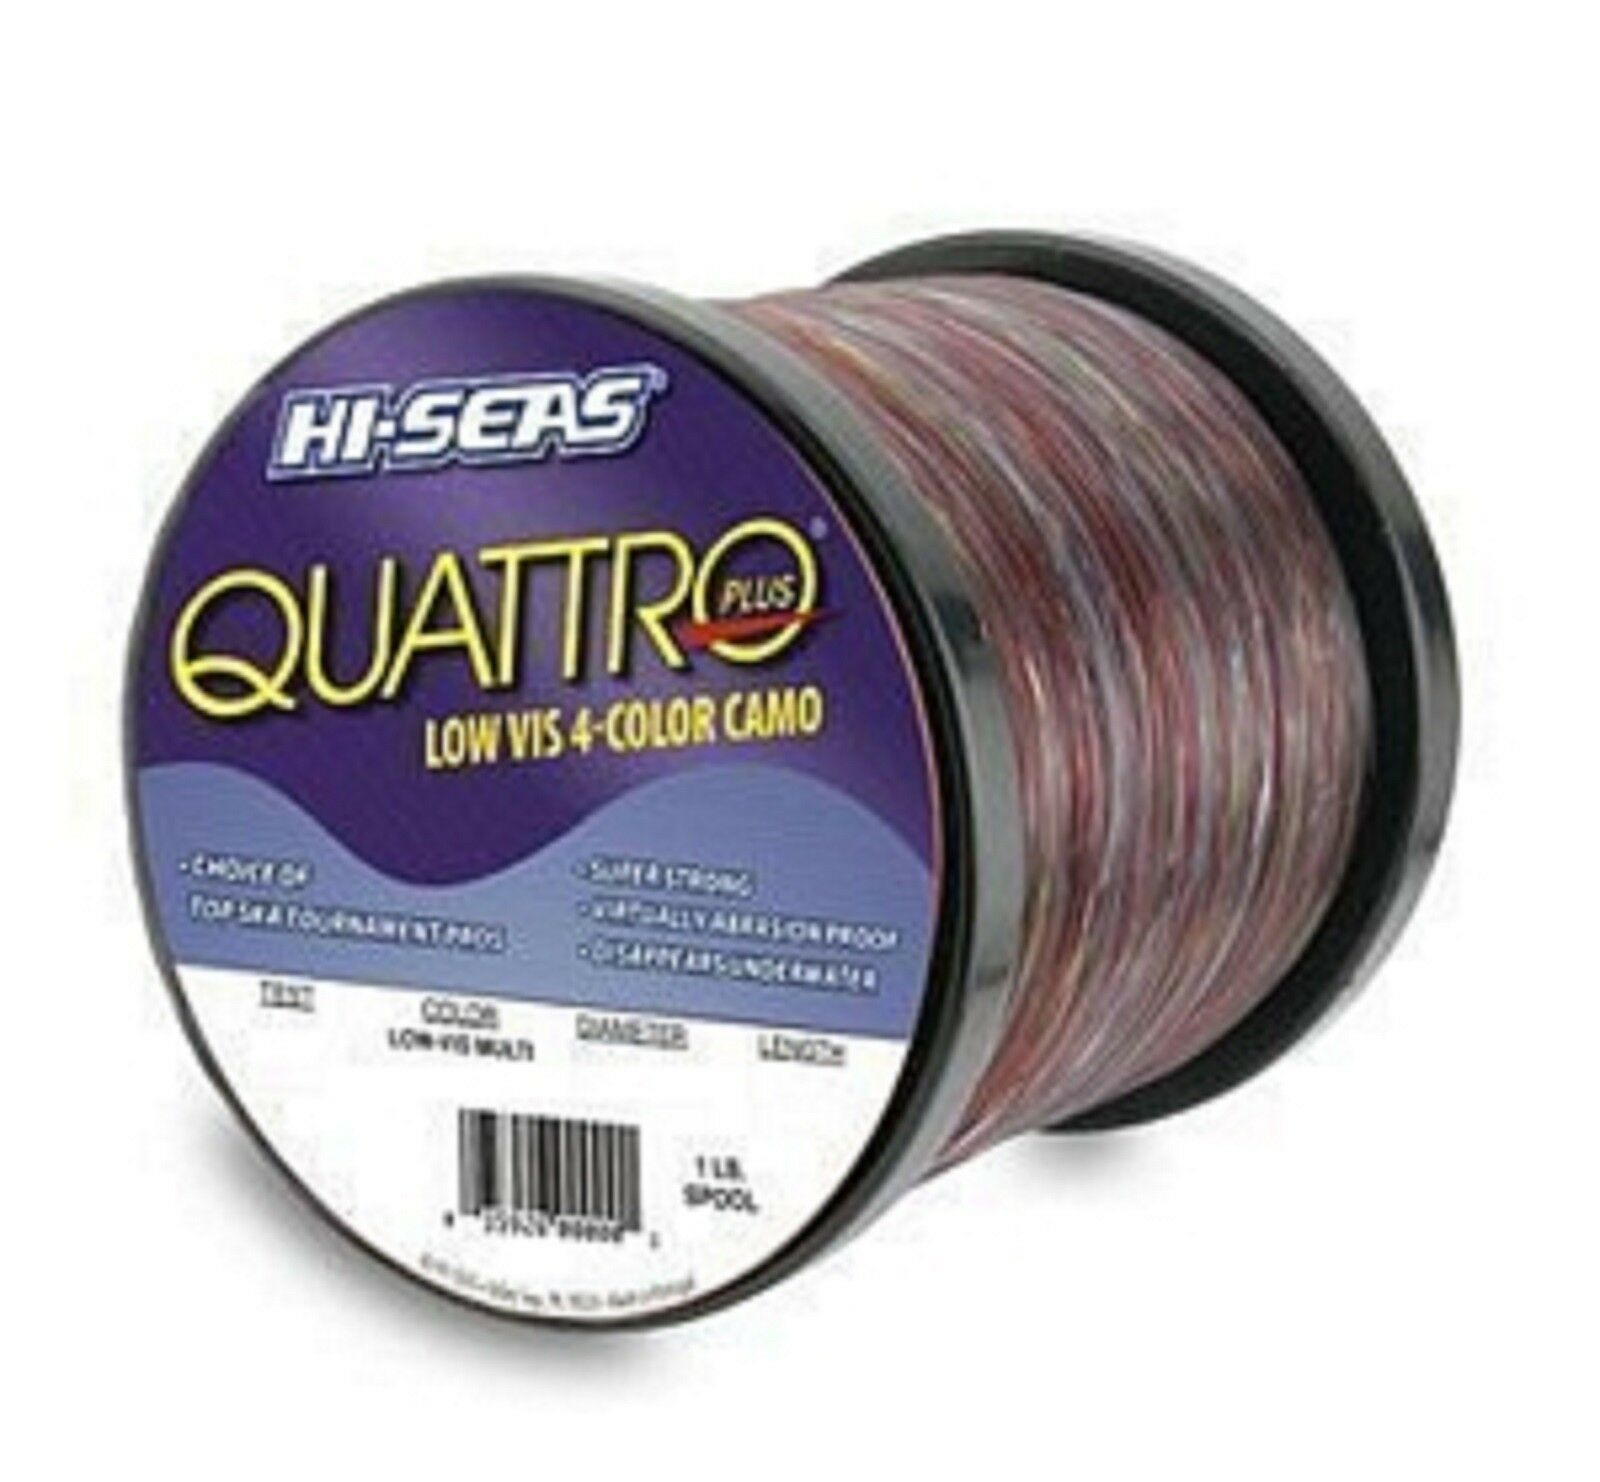 Hi-Seas Quattro Camo Monofilament (50 LB Test) (1 LB  Spool)  wholesale cheap and high quality